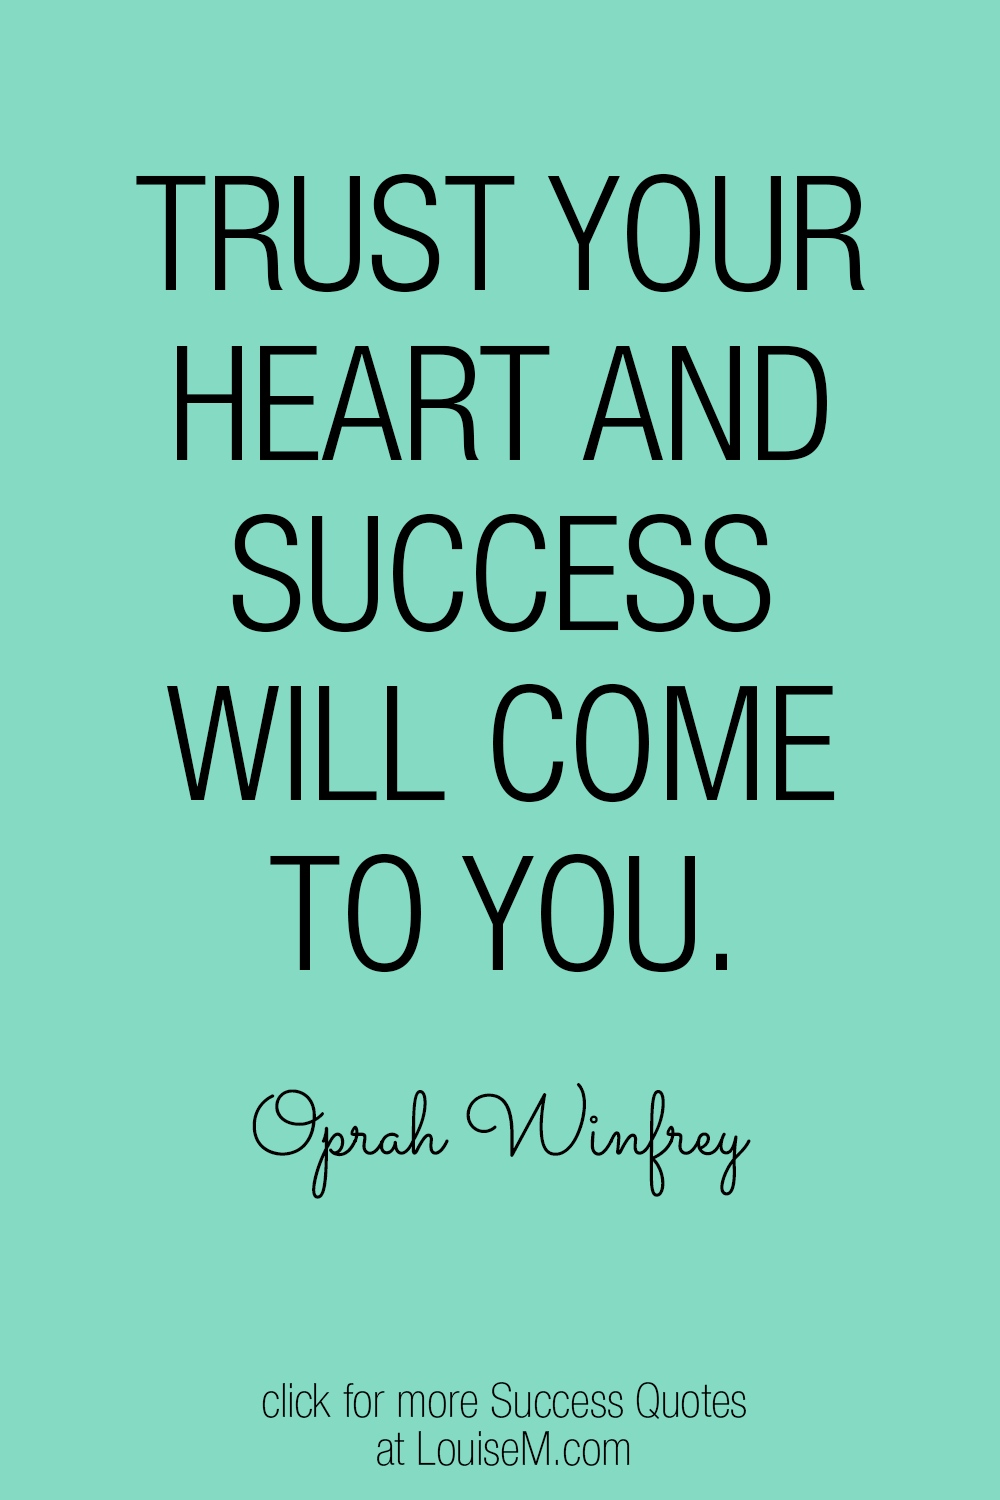 Trust your heart, and success will come to you quote graphic